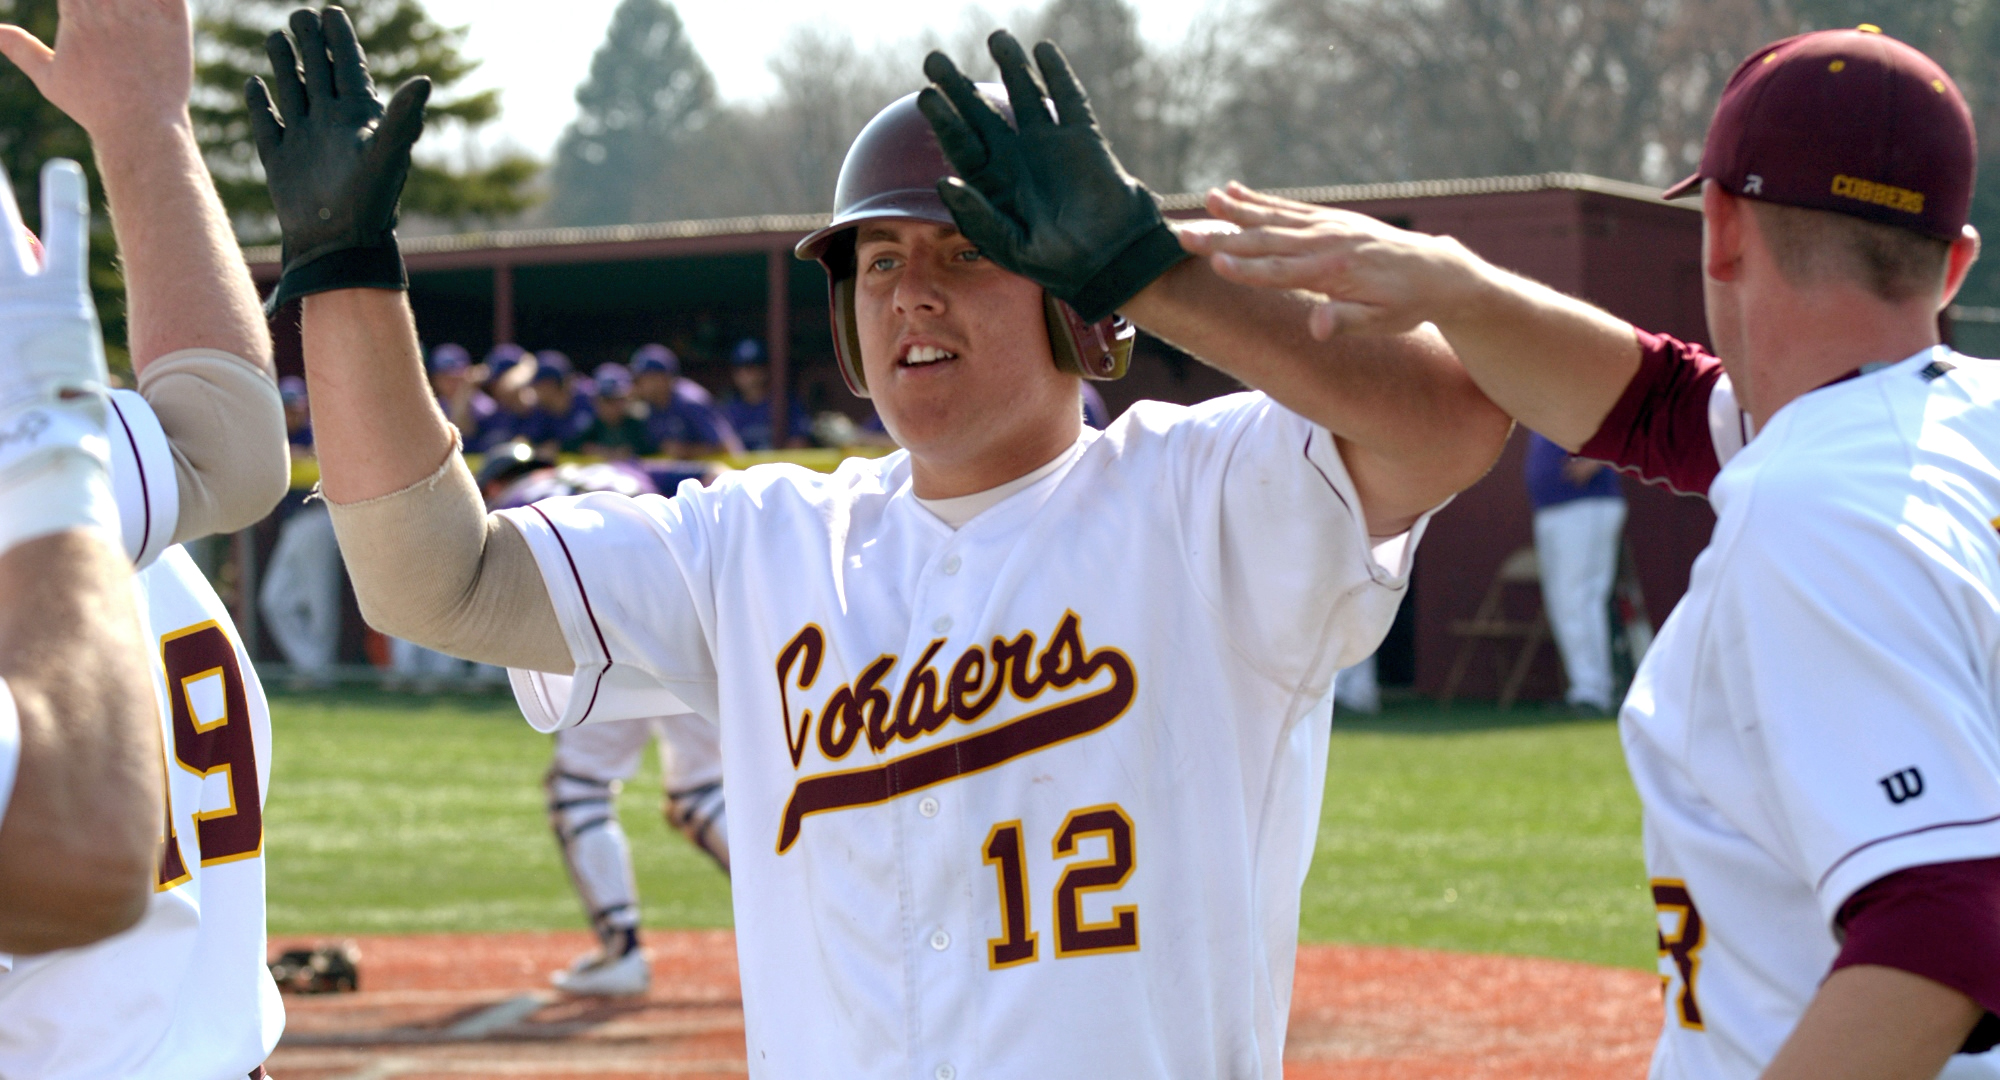 Junior Nate Leintz had a walkoff grand slam in the first game and then the game-tying single in the bottom of the ninth in the second game in the Cobbers' sweep over Augsburg. Both hits came with two outs and two strikes.